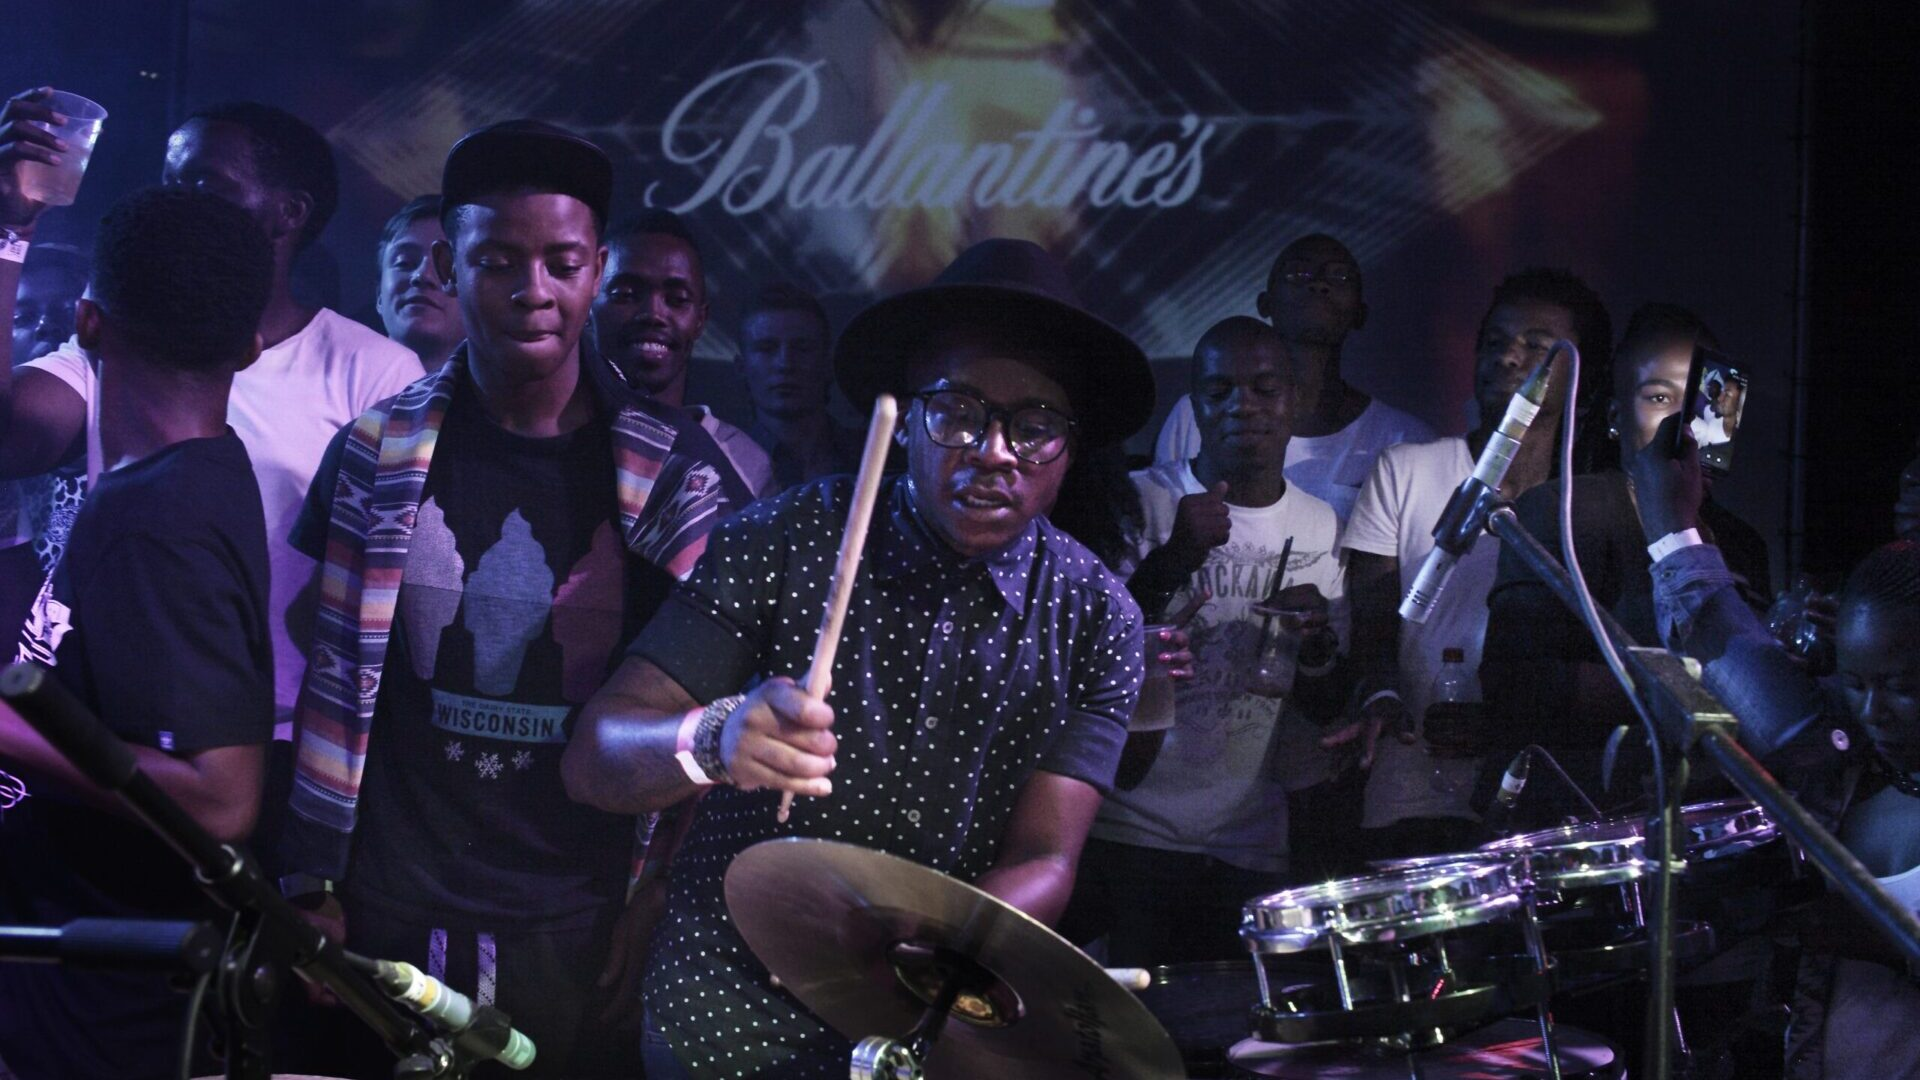 ballantines boiler room true music africa douala scaled new